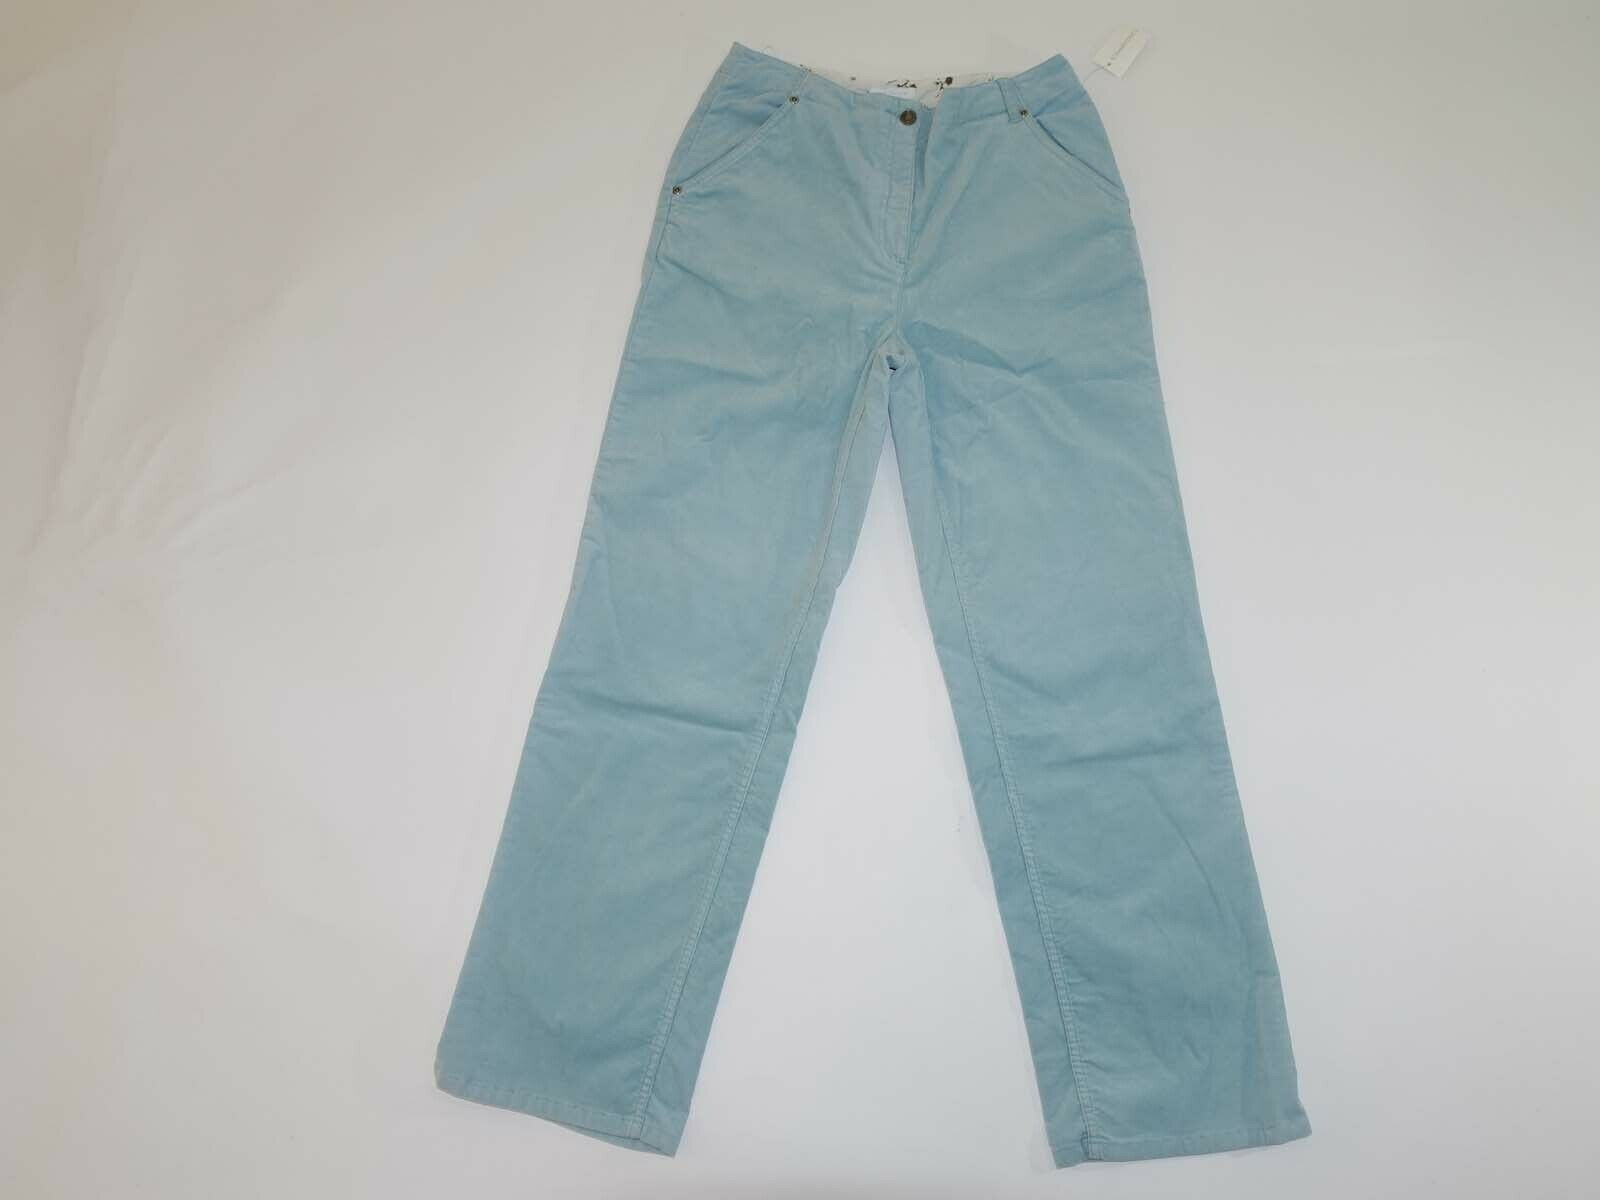 Charter Club Women's Corduroy Pants Size 10 x 31 NWT High Rise Crystal bluee 10R